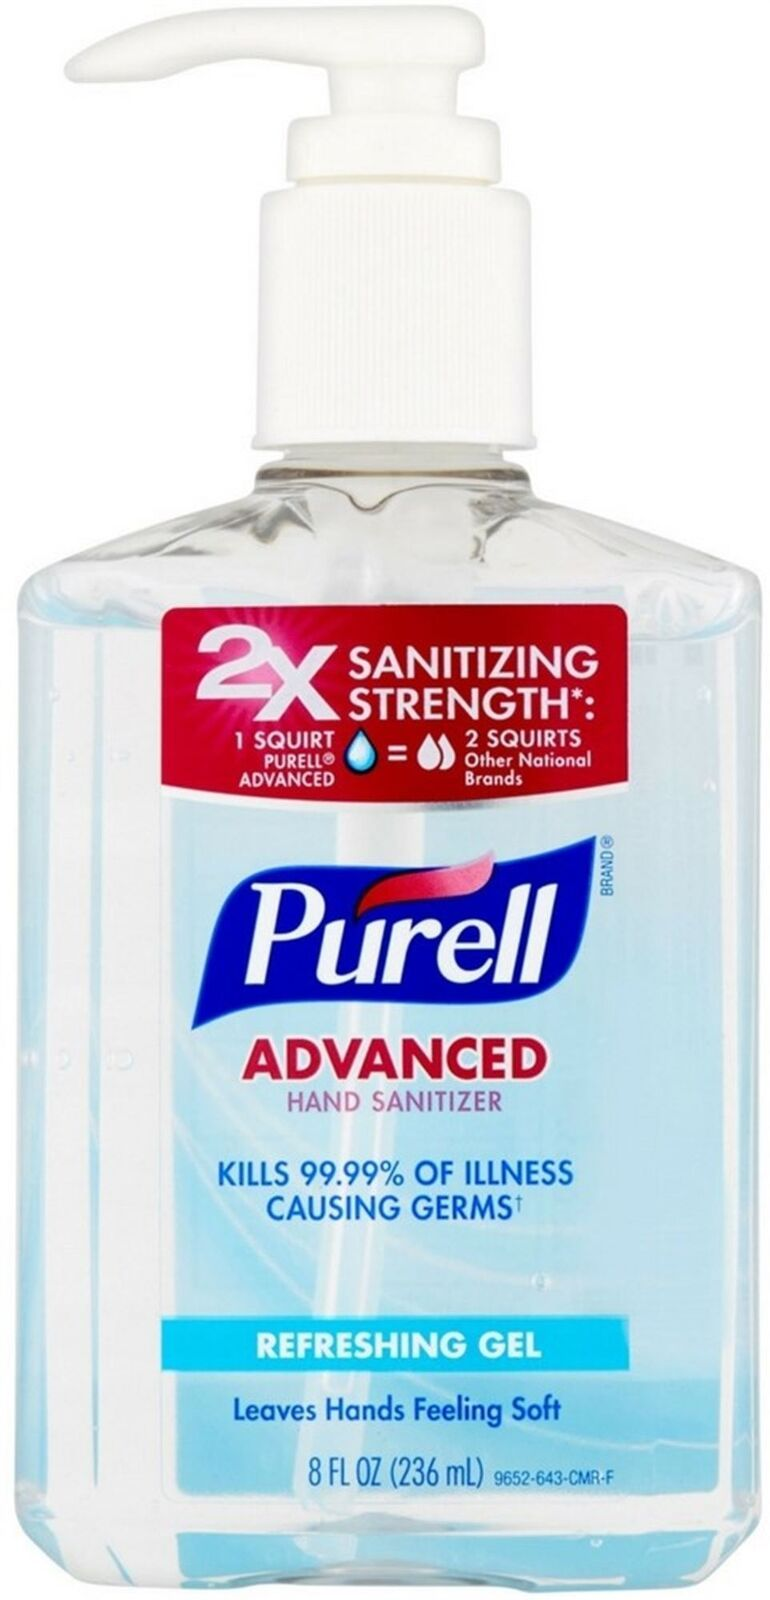 Details About Purell Advanced Hand Sanitizer Refreshing Gel 8 Oz